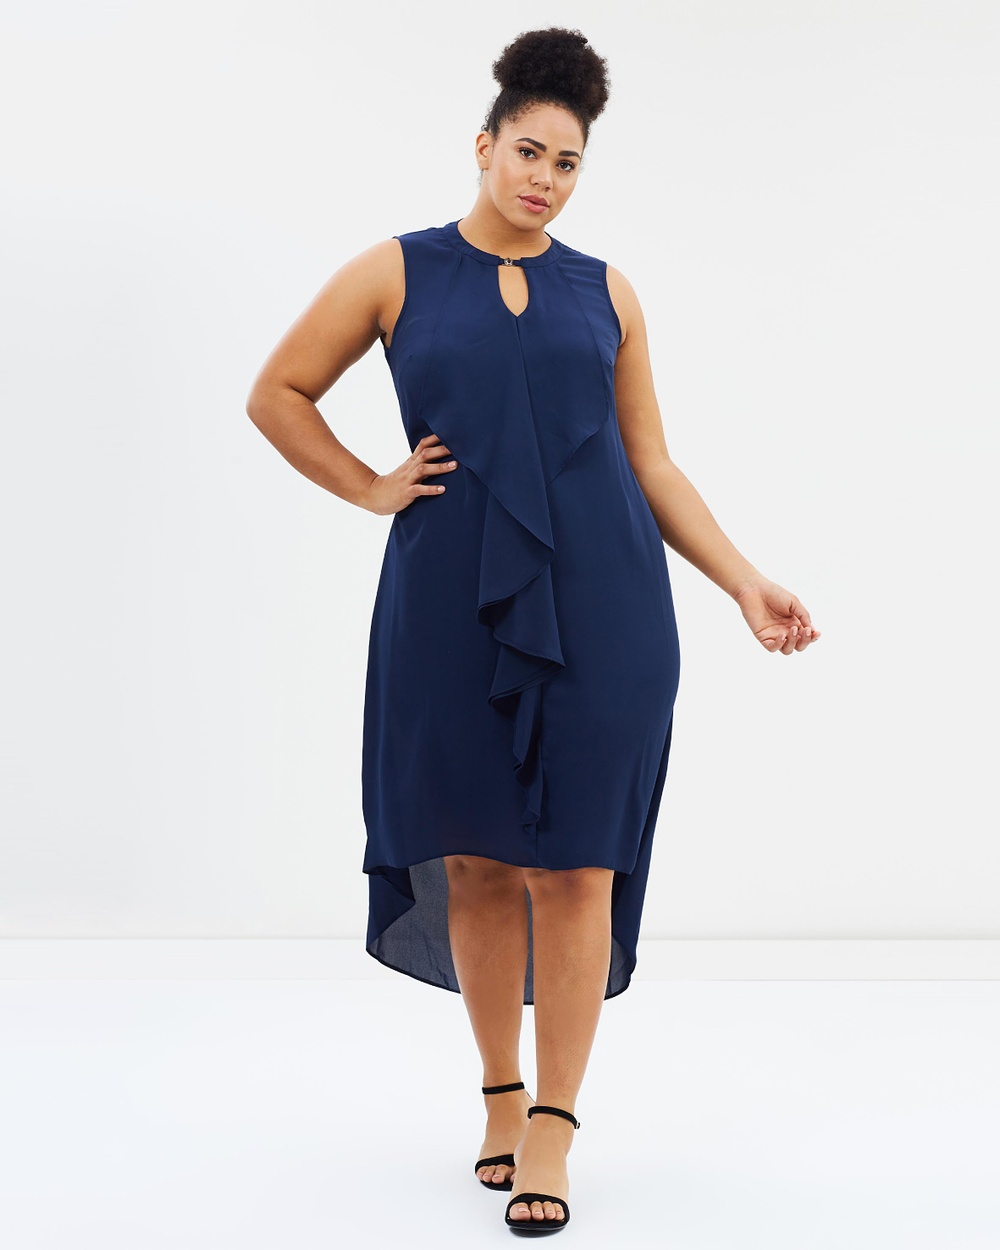 EVANS Frill Dress Dresses Navy Frill Dress